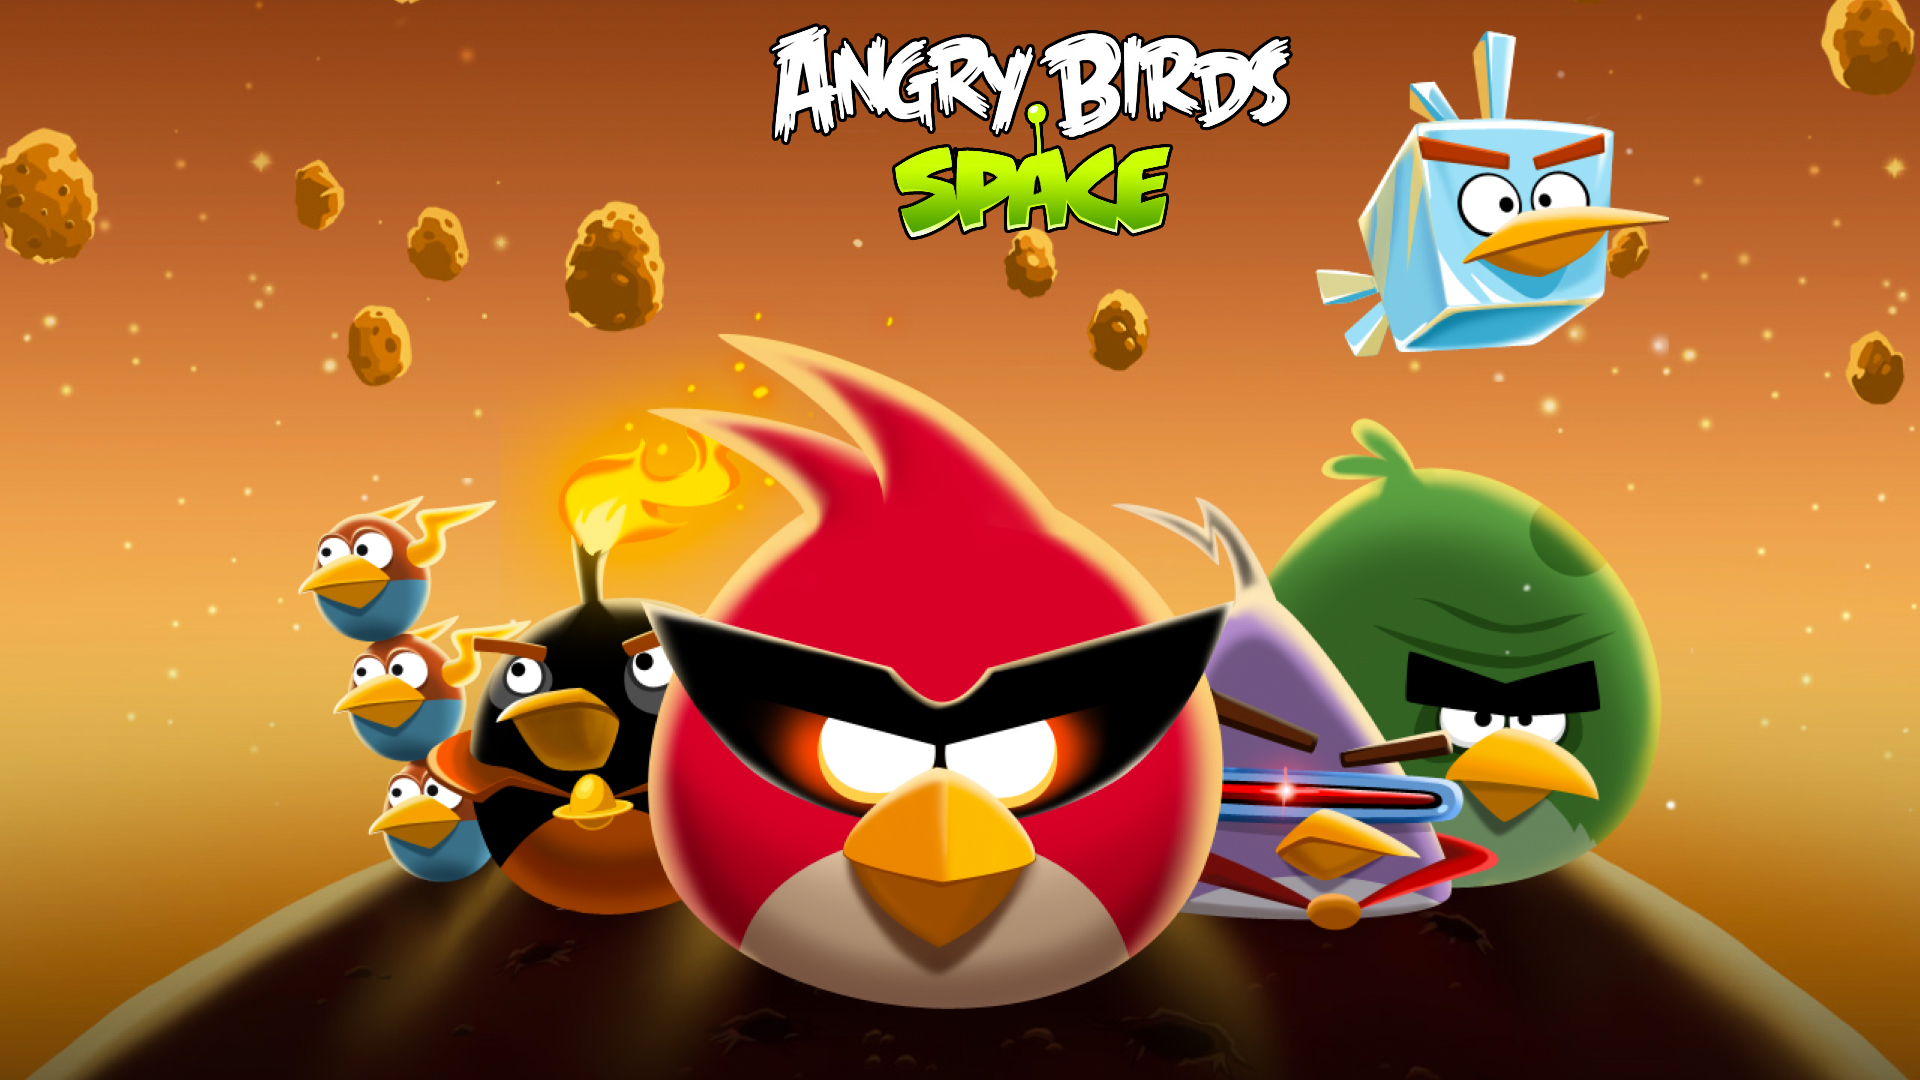 angry birds space wallpaper collection for desktops ipad